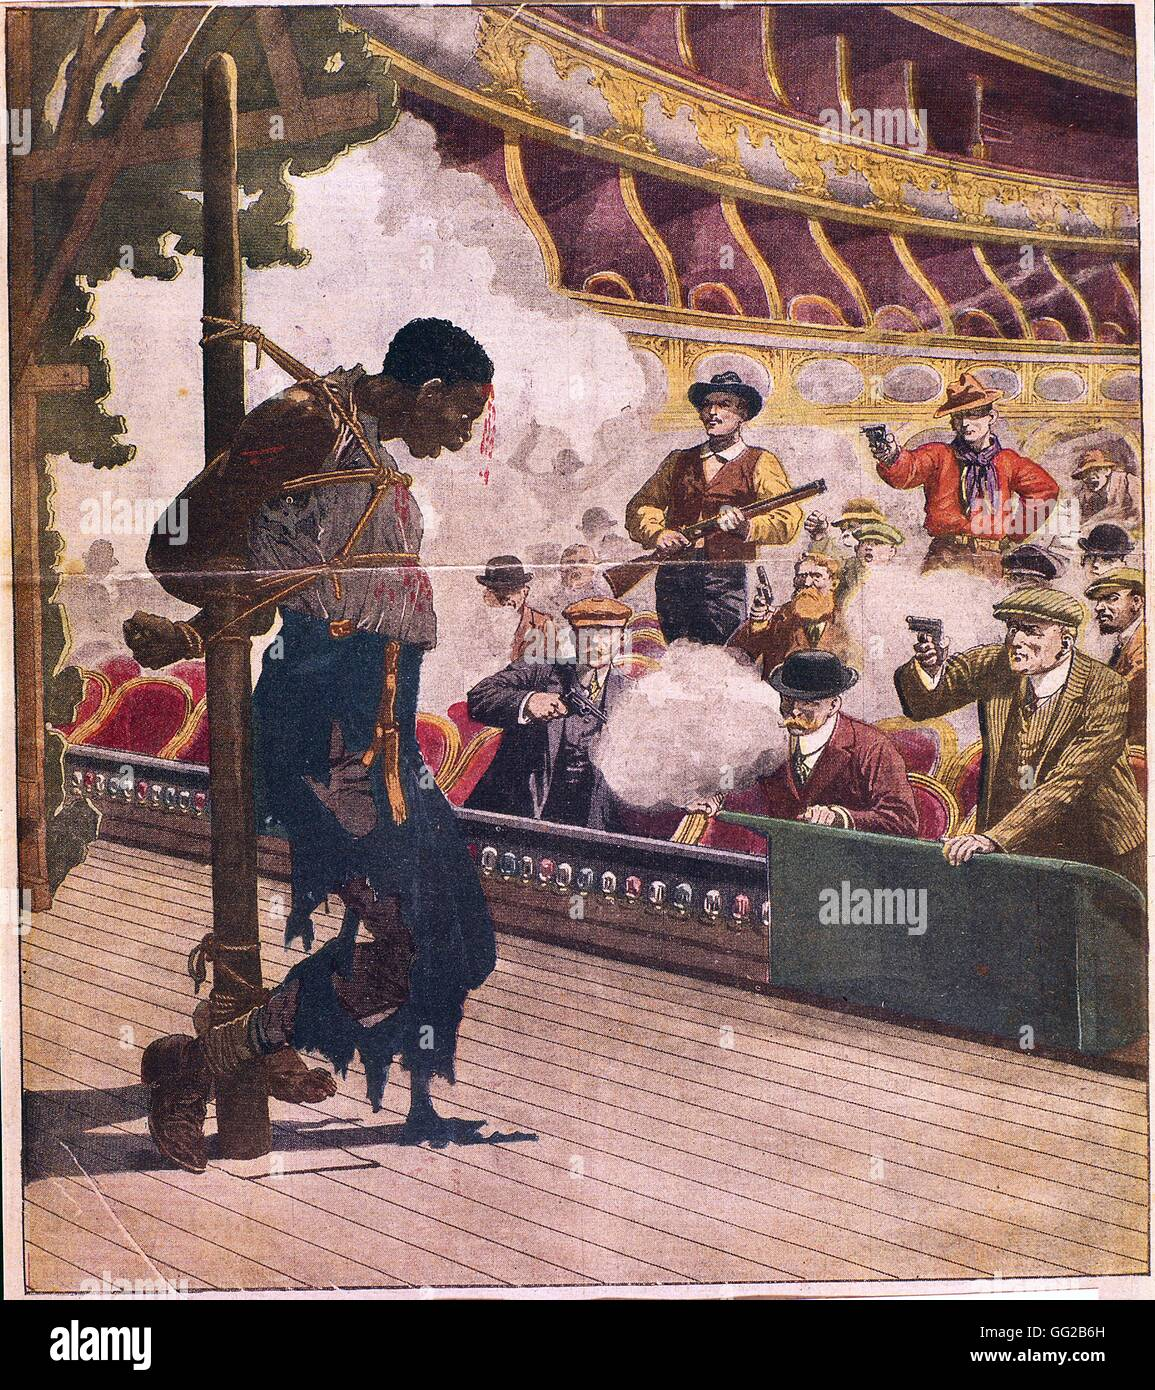 Lynching in Livermore A black man, tied up to a pole on the opera stage, is being shot at by white men Kentucky, Stock Photo